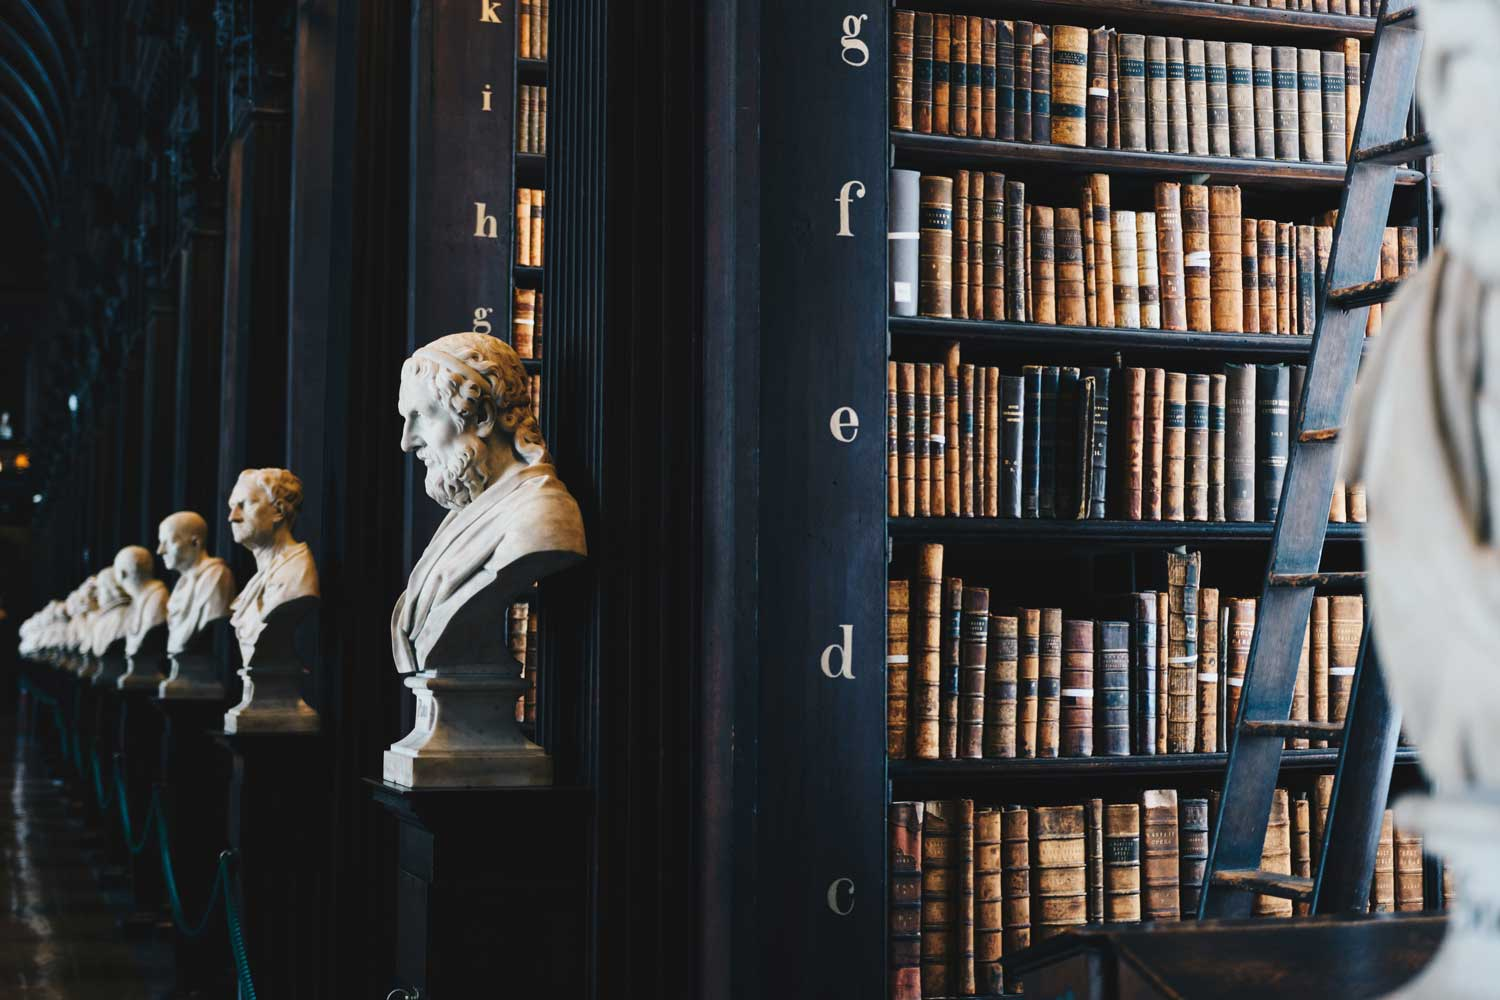 Rows of bookshelves filled with books are met with a bust at each bookshelf's end